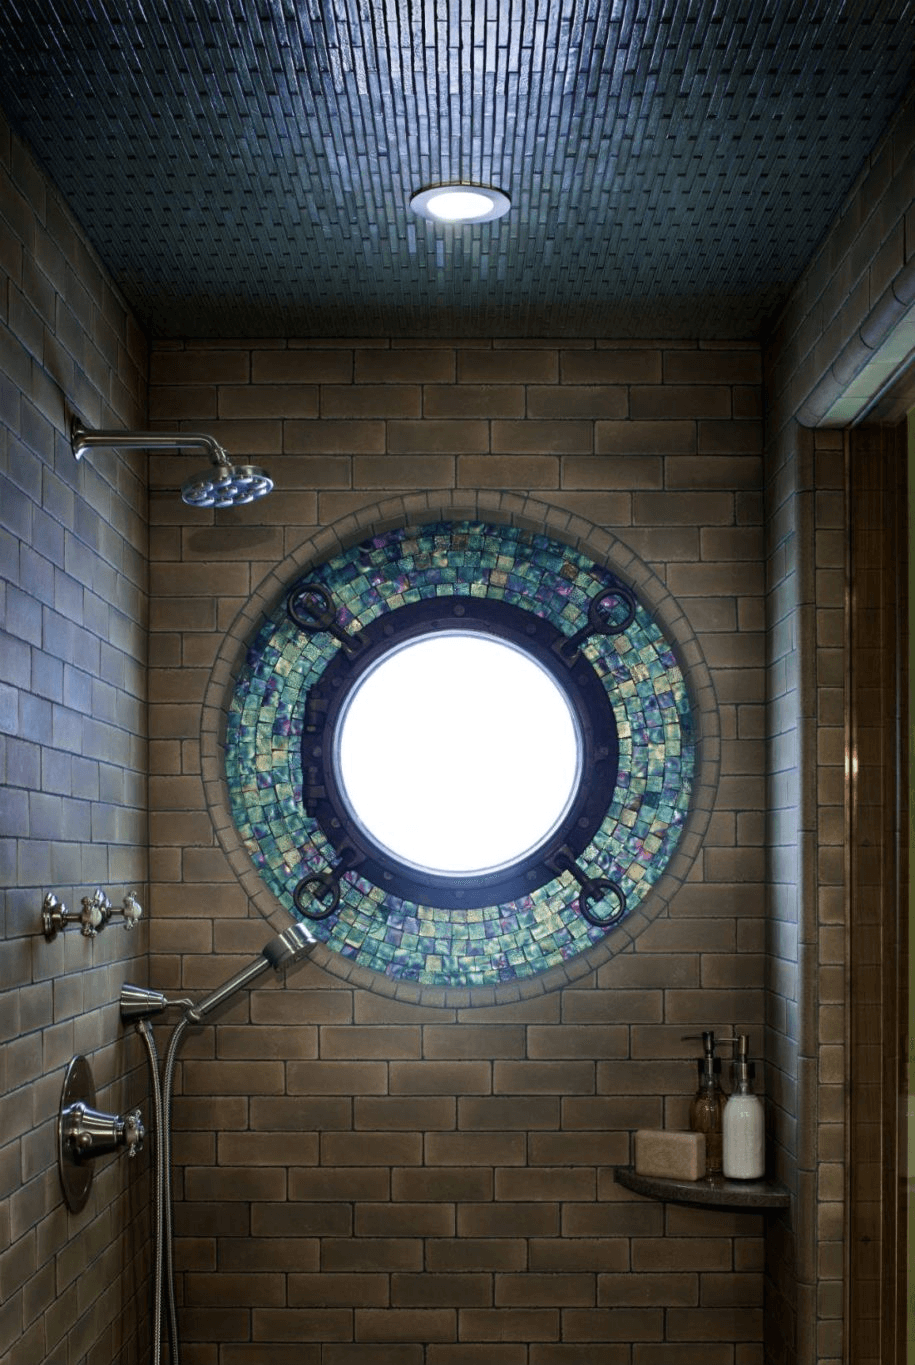 Mosaic ceramic tile window border in a shower